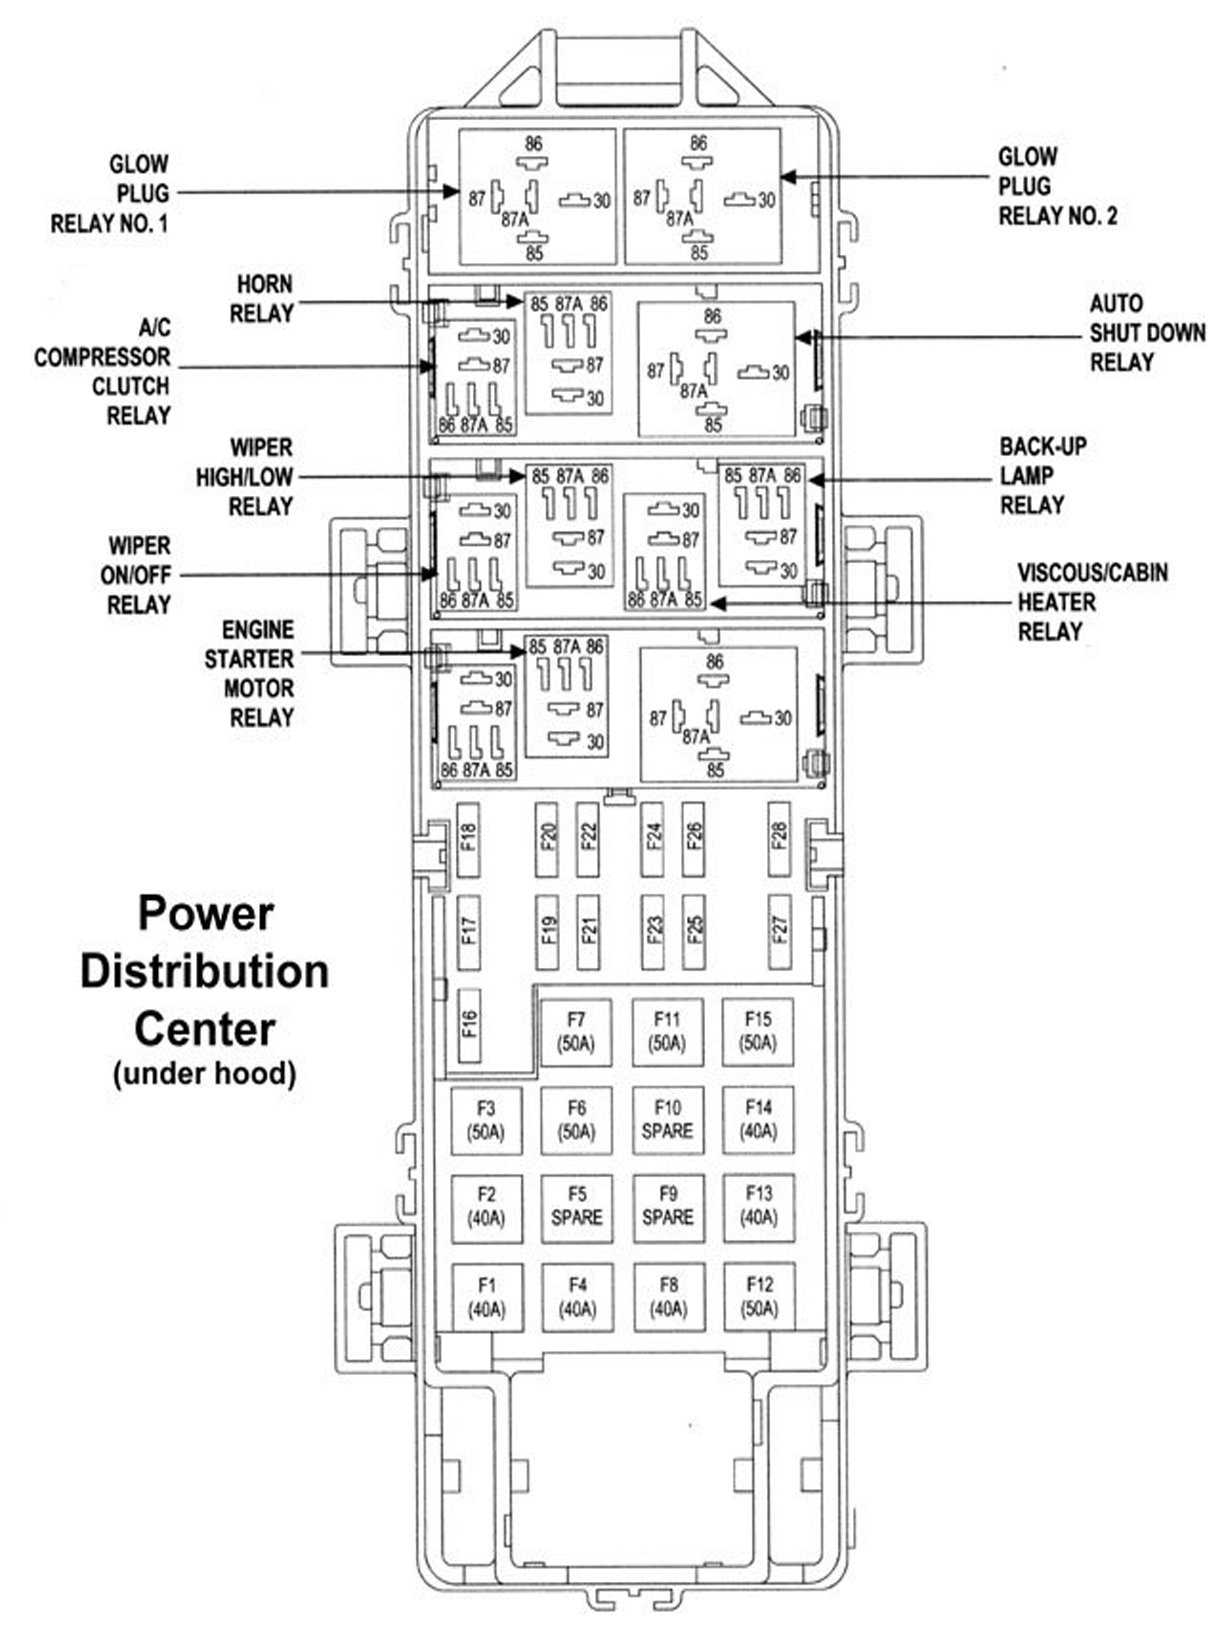 2011 jeep grand cherokee fuse diagram    jeep       grand       cherokee    wj 1999 to 2004    fuse    box    diagram        jeep       grand       cherokee    wj 1999 to 2004    fuse    box    diagram